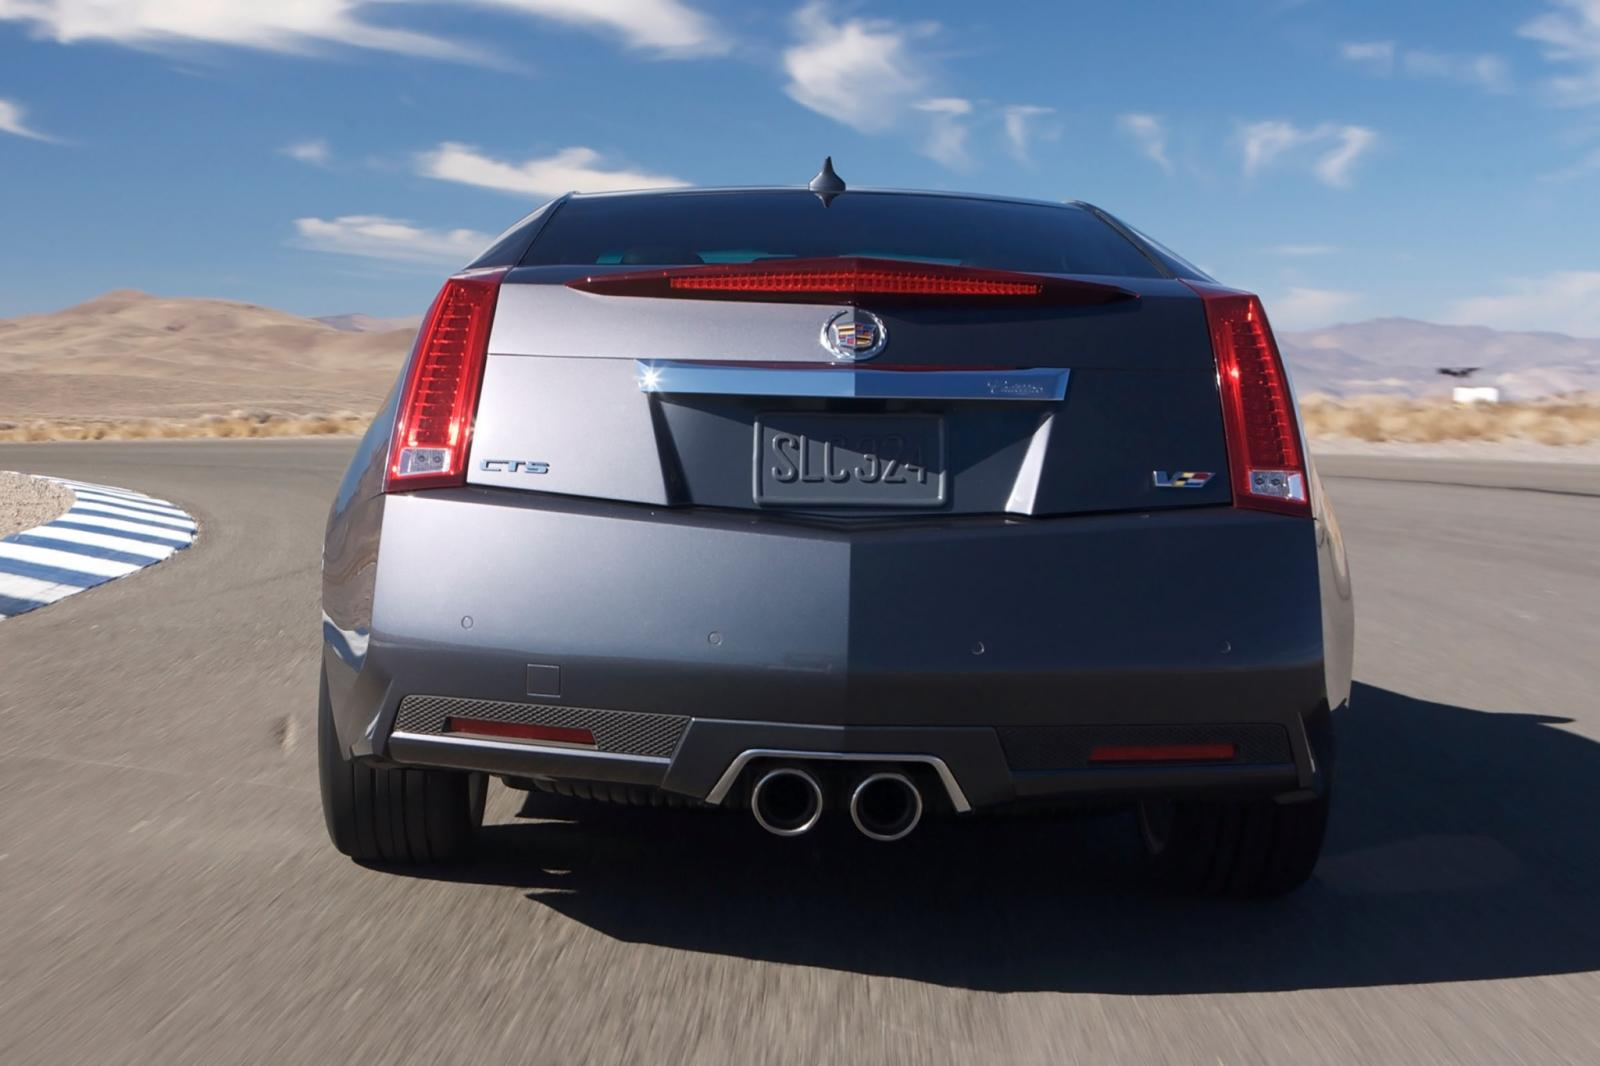 2013 Cadillac Cts V Coupe Information And Photos Zombiedrive